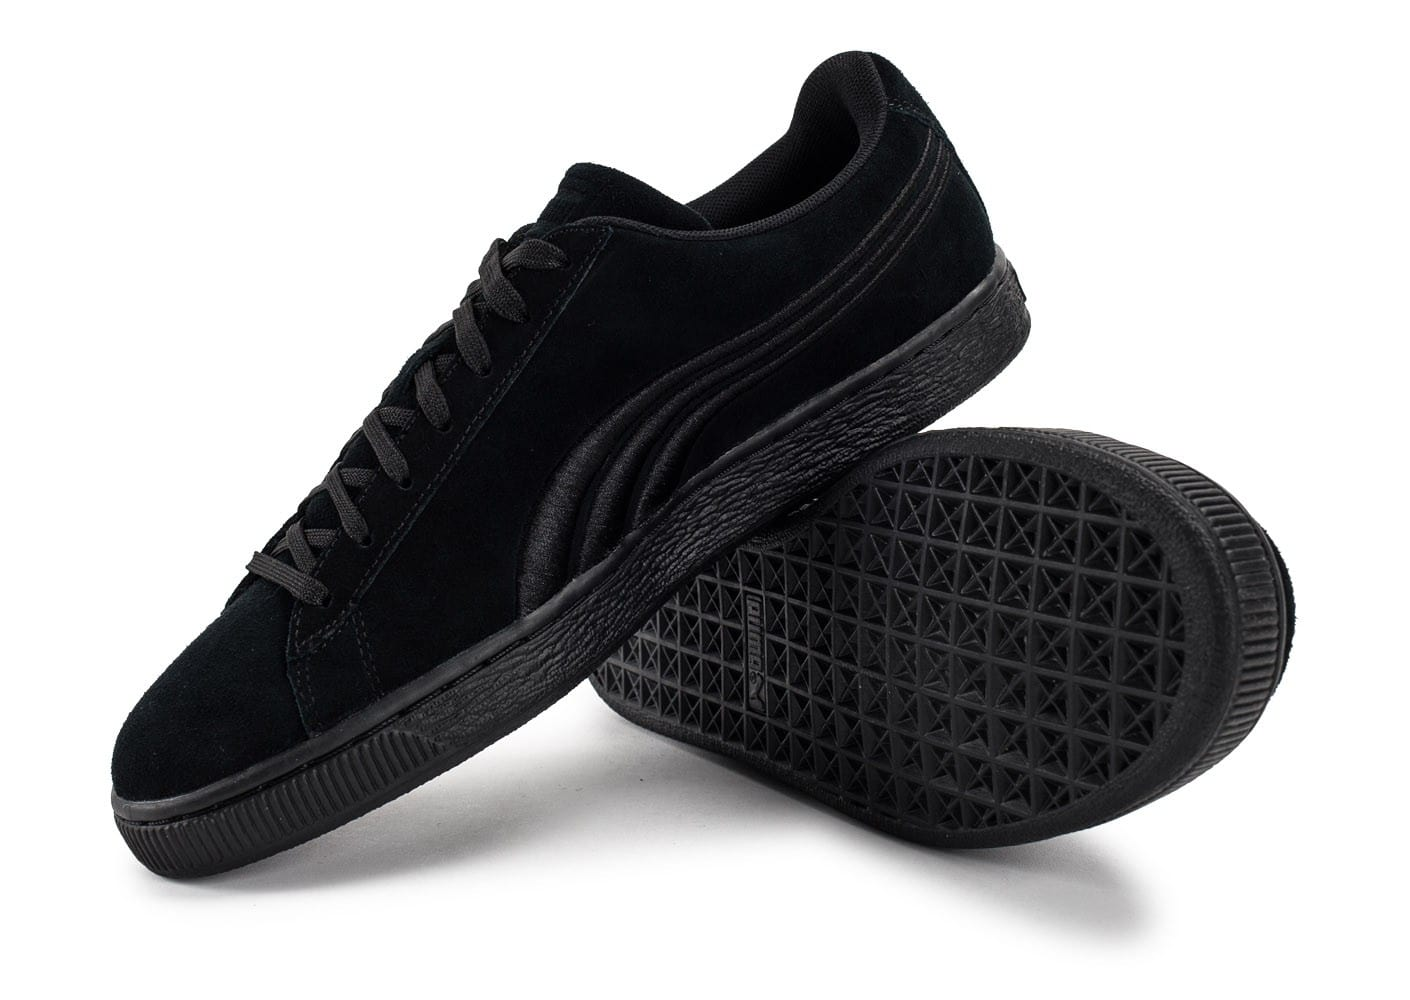 half off 4a243 be574 Badge Classic Baskets noire Chausport Puma homme Chaussures TZzw5wCq